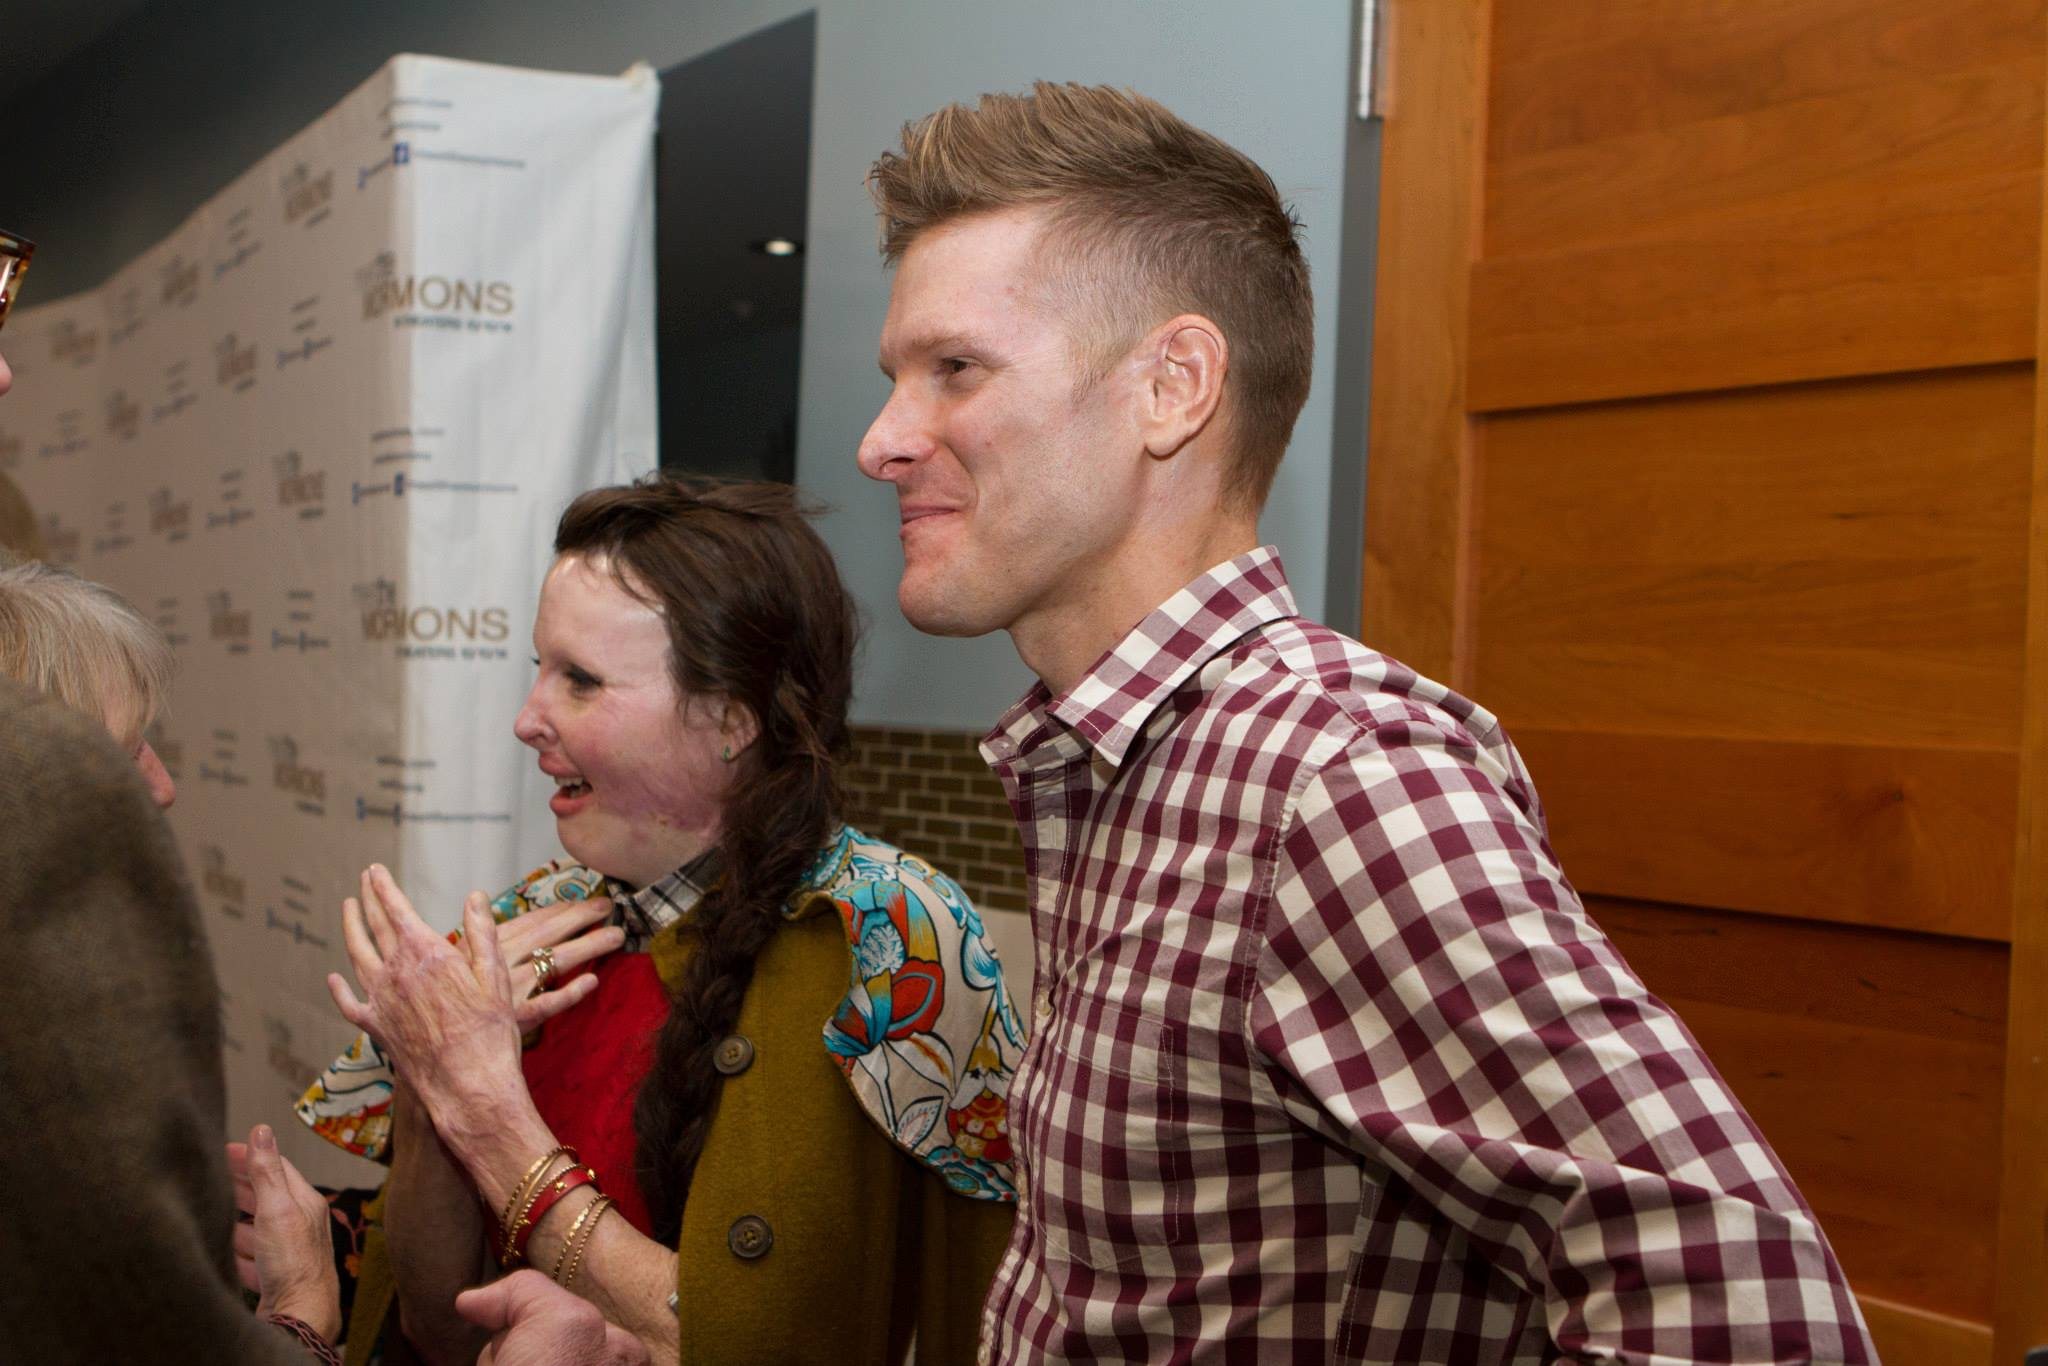 """Stephanie Nielson and her husband, Christian, greet other attendees at the """"Meet the Mormons"""" premiere. Nielson was among many prominent bloggers invited to the event. (John Dye)"""